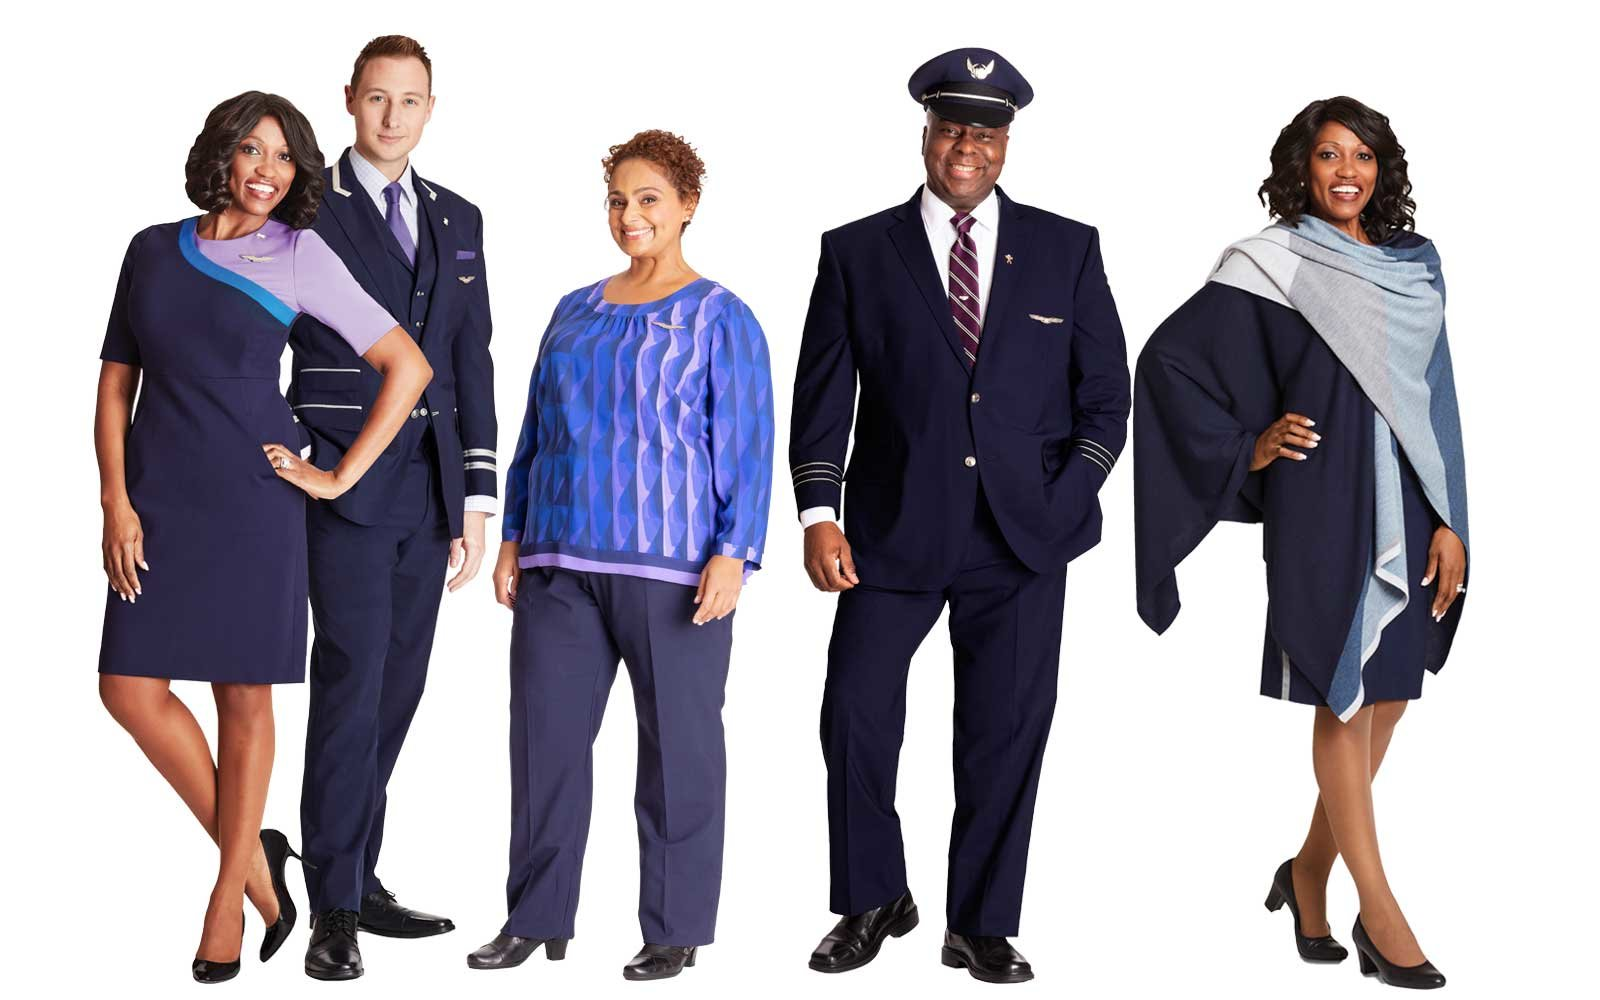 6bff05dce29 United Has New Uniforms — and There's a Reason Airlines Are Dressing Their  Employees in Purple | Travel + Leisure